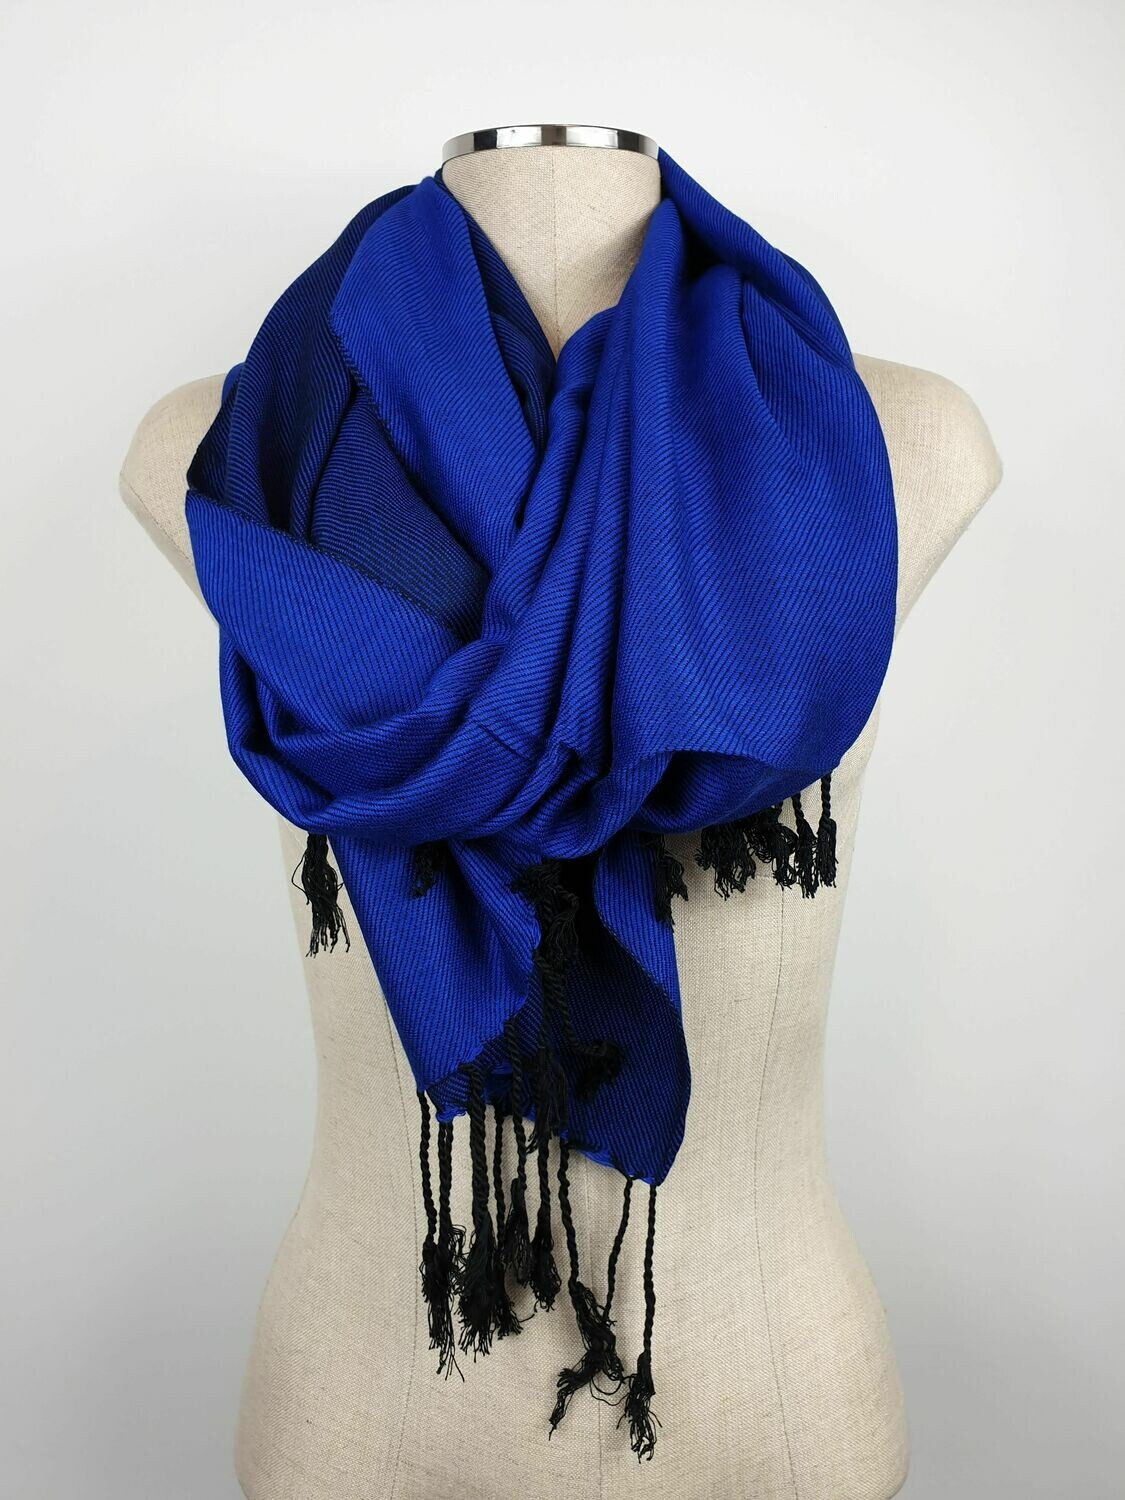 Doubleface Shawl Royal Blue x Black